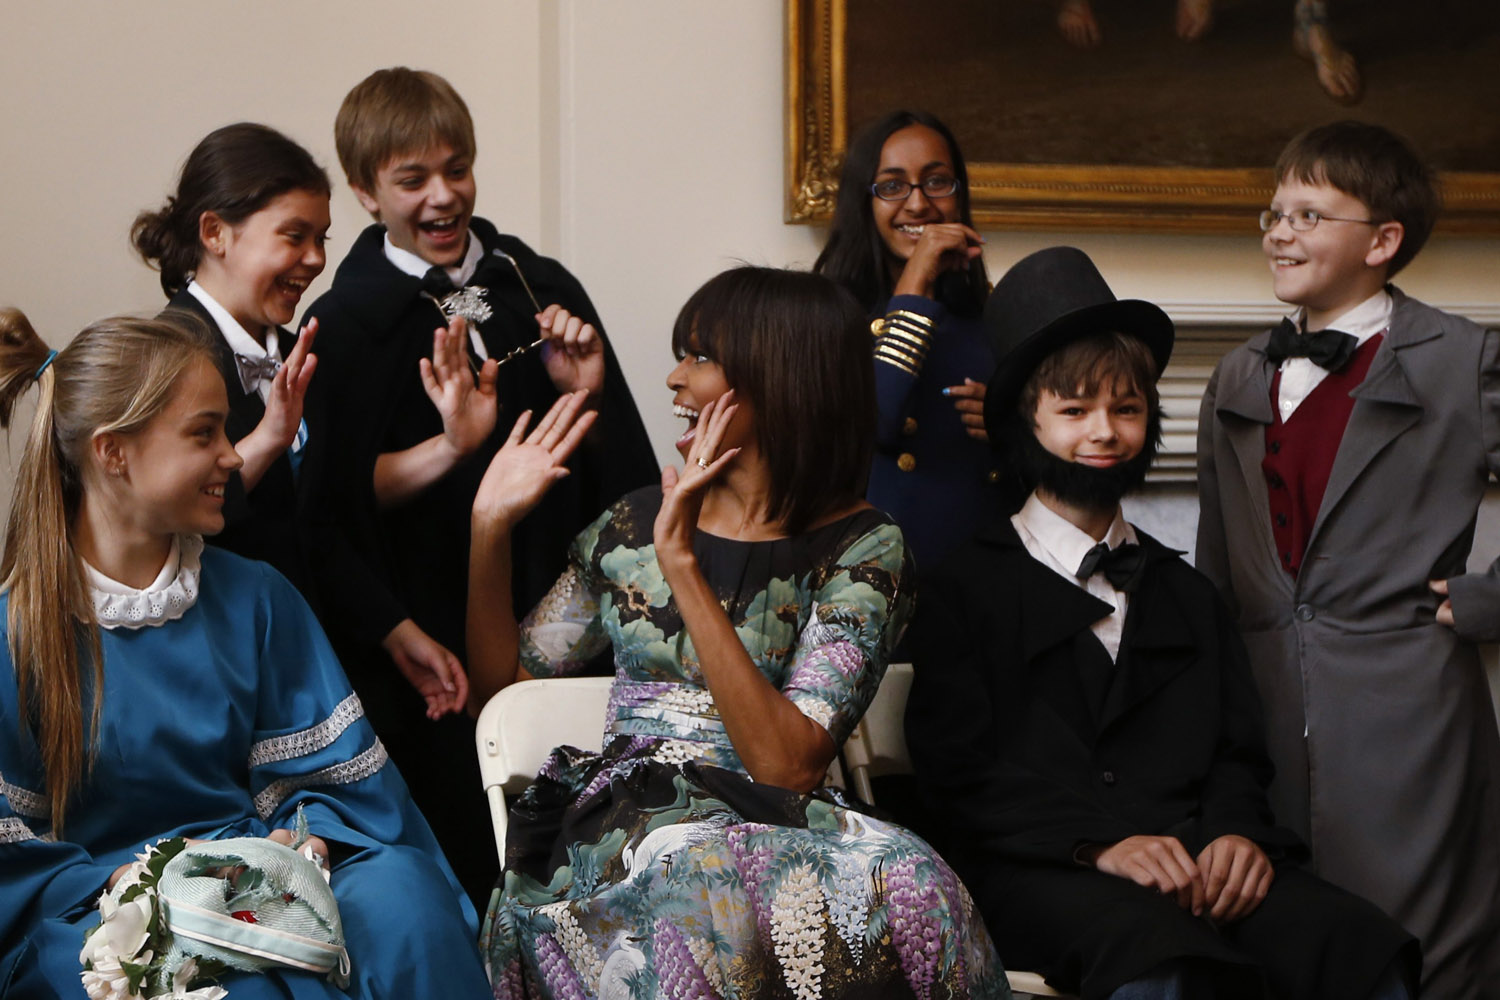 May 22, 2013. U.S. first lady Michelle Obama reacts with school children from Willow Springs Elementary School in Fairfax, Va, as they participate in a play about the emancipation of slaves during Abraham Lincoln's presidency, at historic Decatur House in Washington.